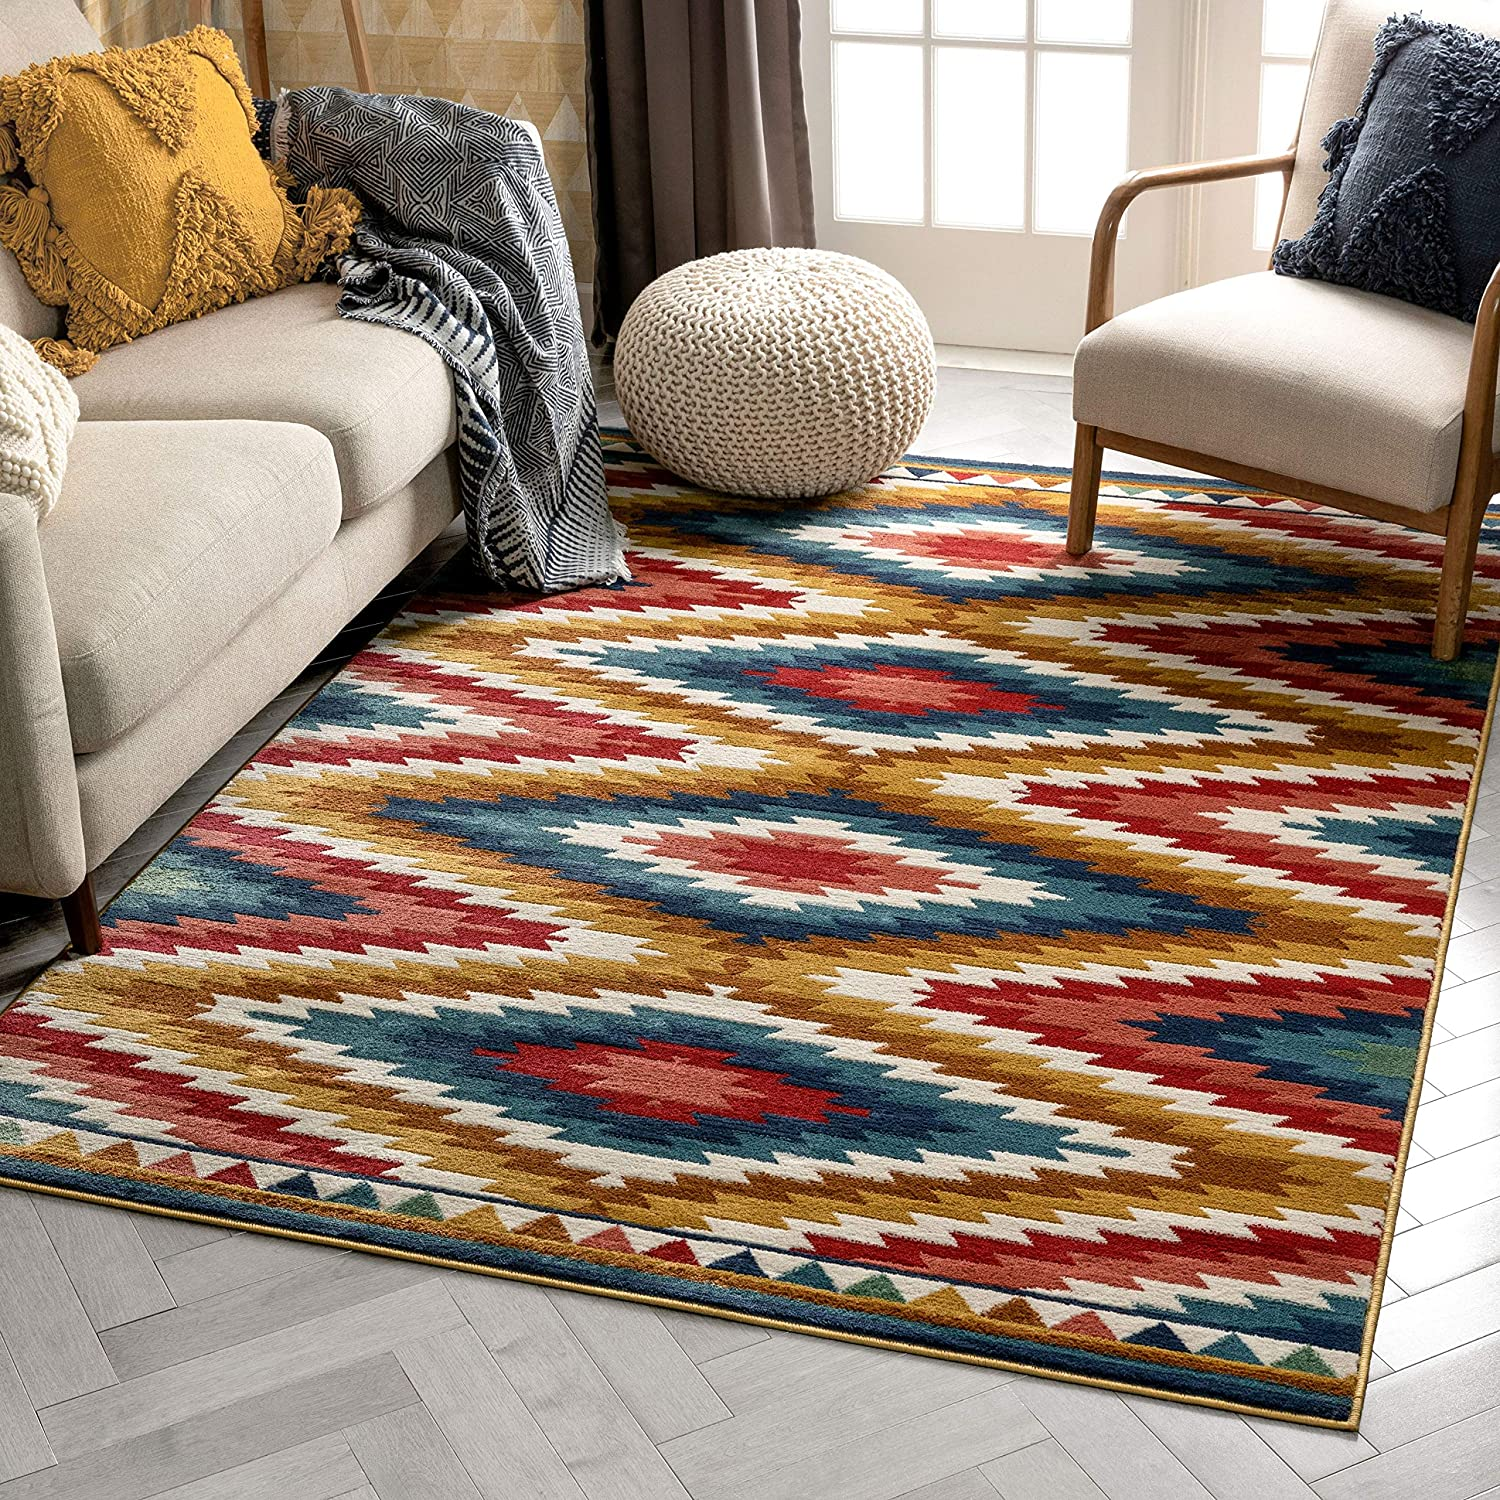 Well Woven Mia Blue Southwestern Medallion Area Rug 8x10 7 10 X 9 10 Home Kitchen